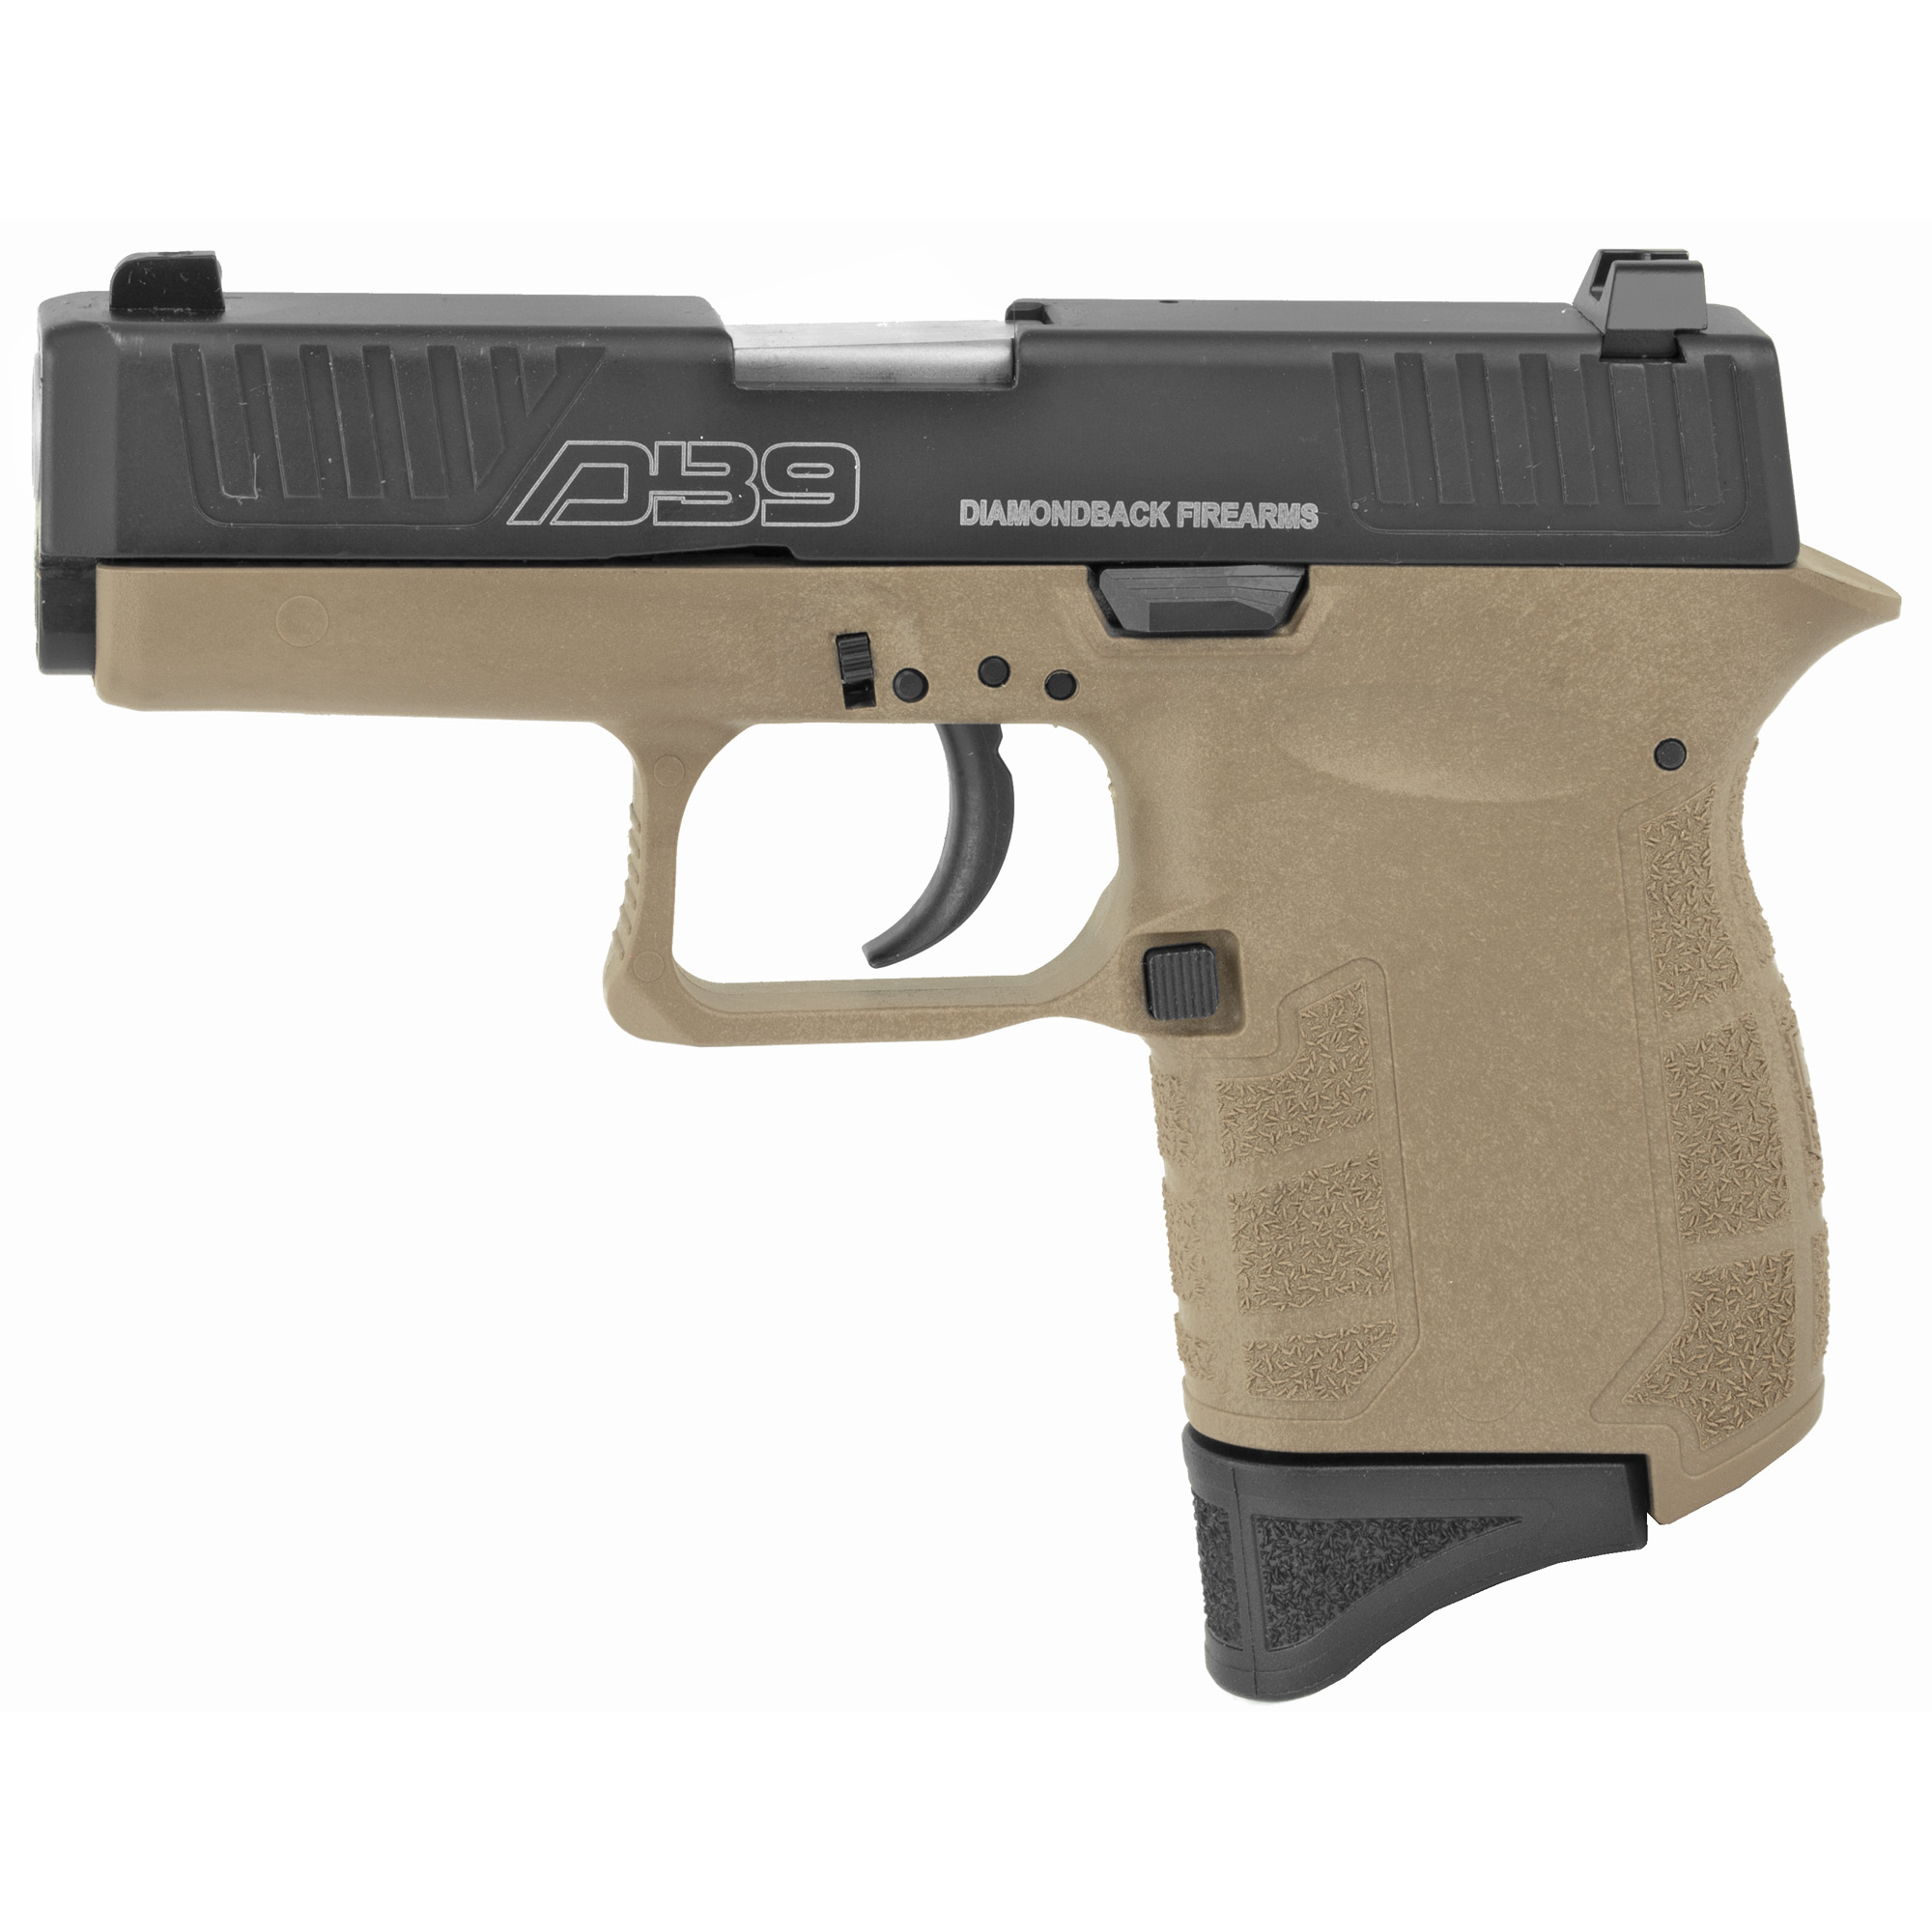 """Diamondback Firearms is proud to present the DB9"""" a micro-compact 9mm pistol made entirely in the USA. Designed with safety in mind"""" the DB9 features a """"ZERO-Energy"""" striker firing system with a mechanical firing pin block"""" a steel magazine catch to secure a sheet metal magazine and real windage-adjustable sights"""" all in a lightweight pistol."""